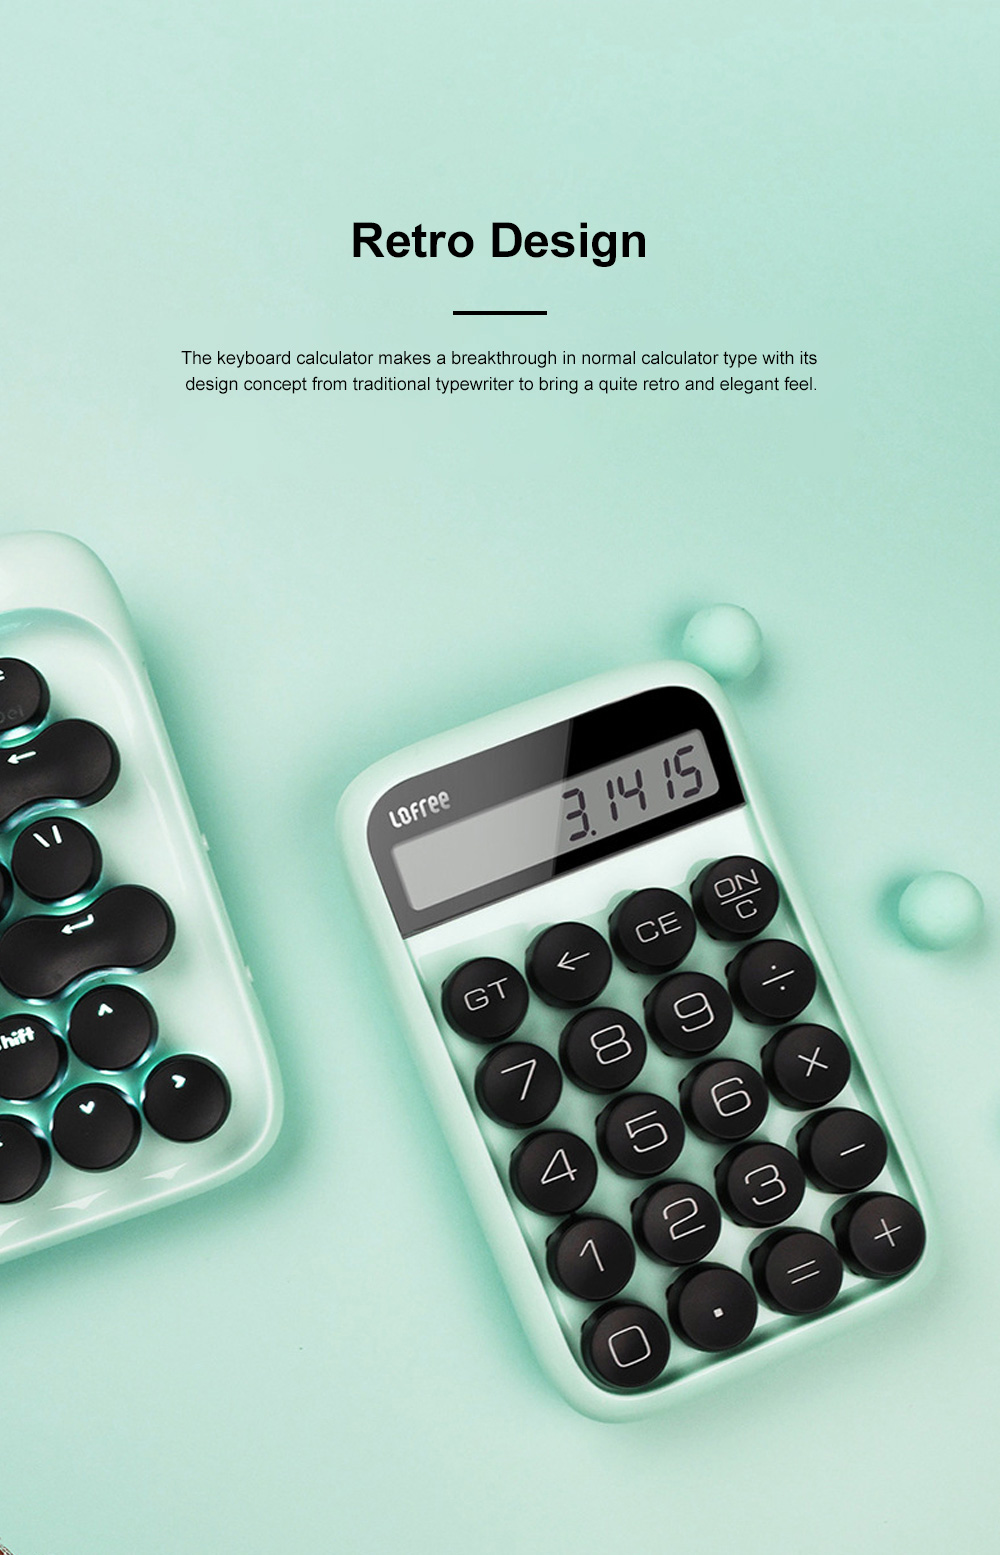 Retro Style Keyboard Calculator for Office Use Mechanical Dot Keycap Key Calculator Stylish Durable Calculator 2